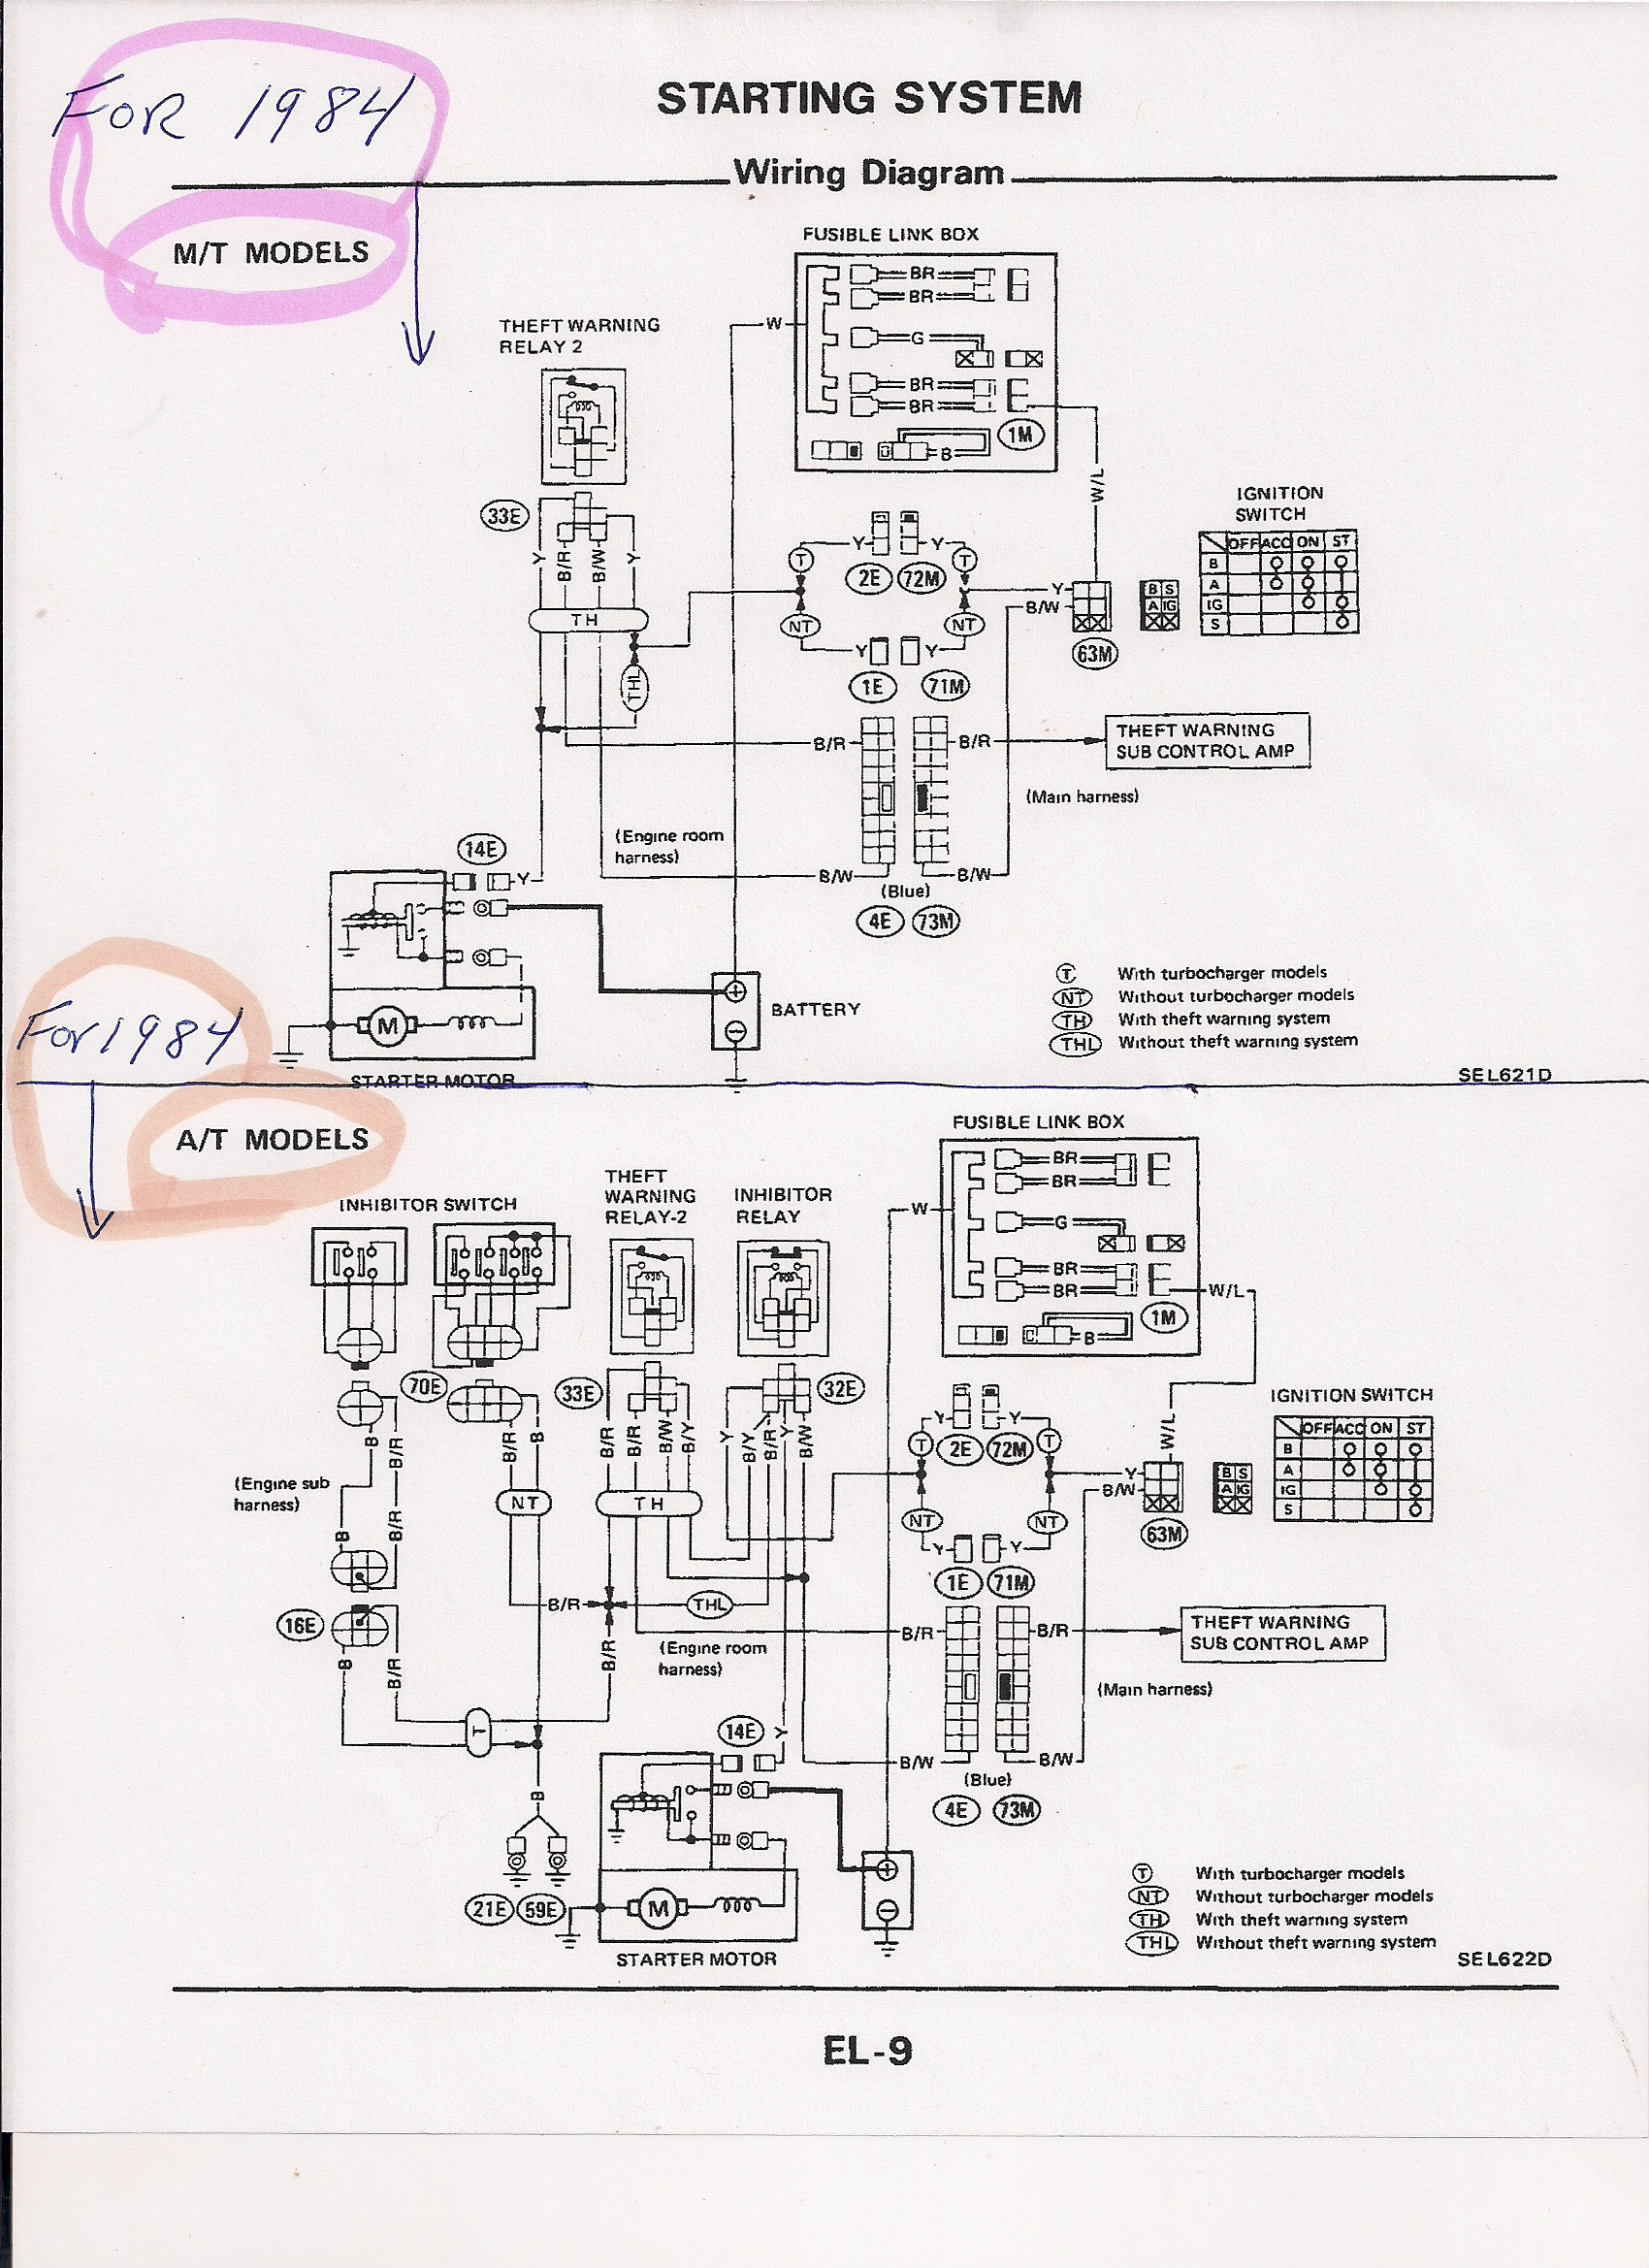 Nissan 300zx Ignition Wiring Diagram Nissan Wiring